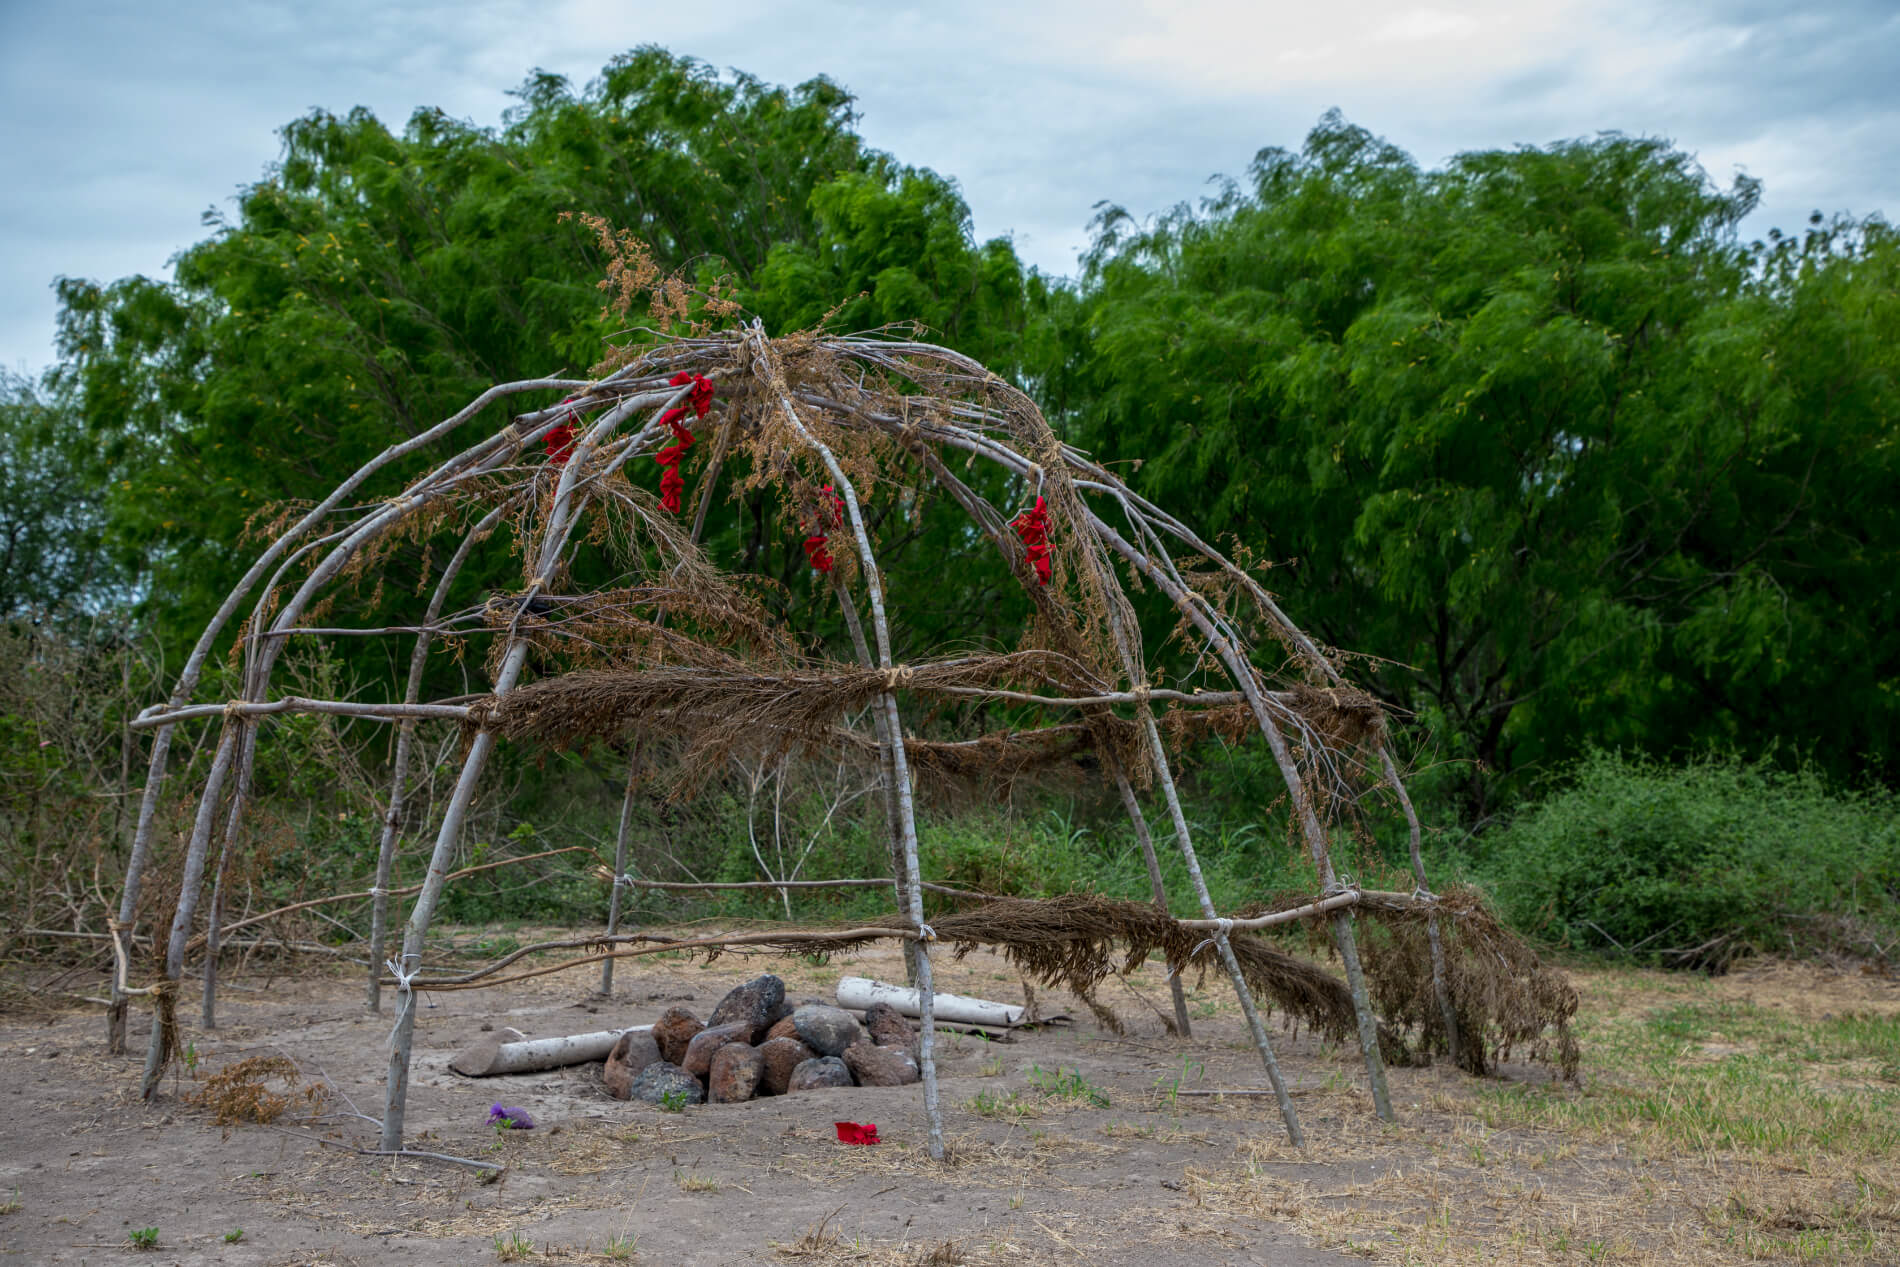 Completed sweat lodge at the Esto'k Gna's Mariposa Village